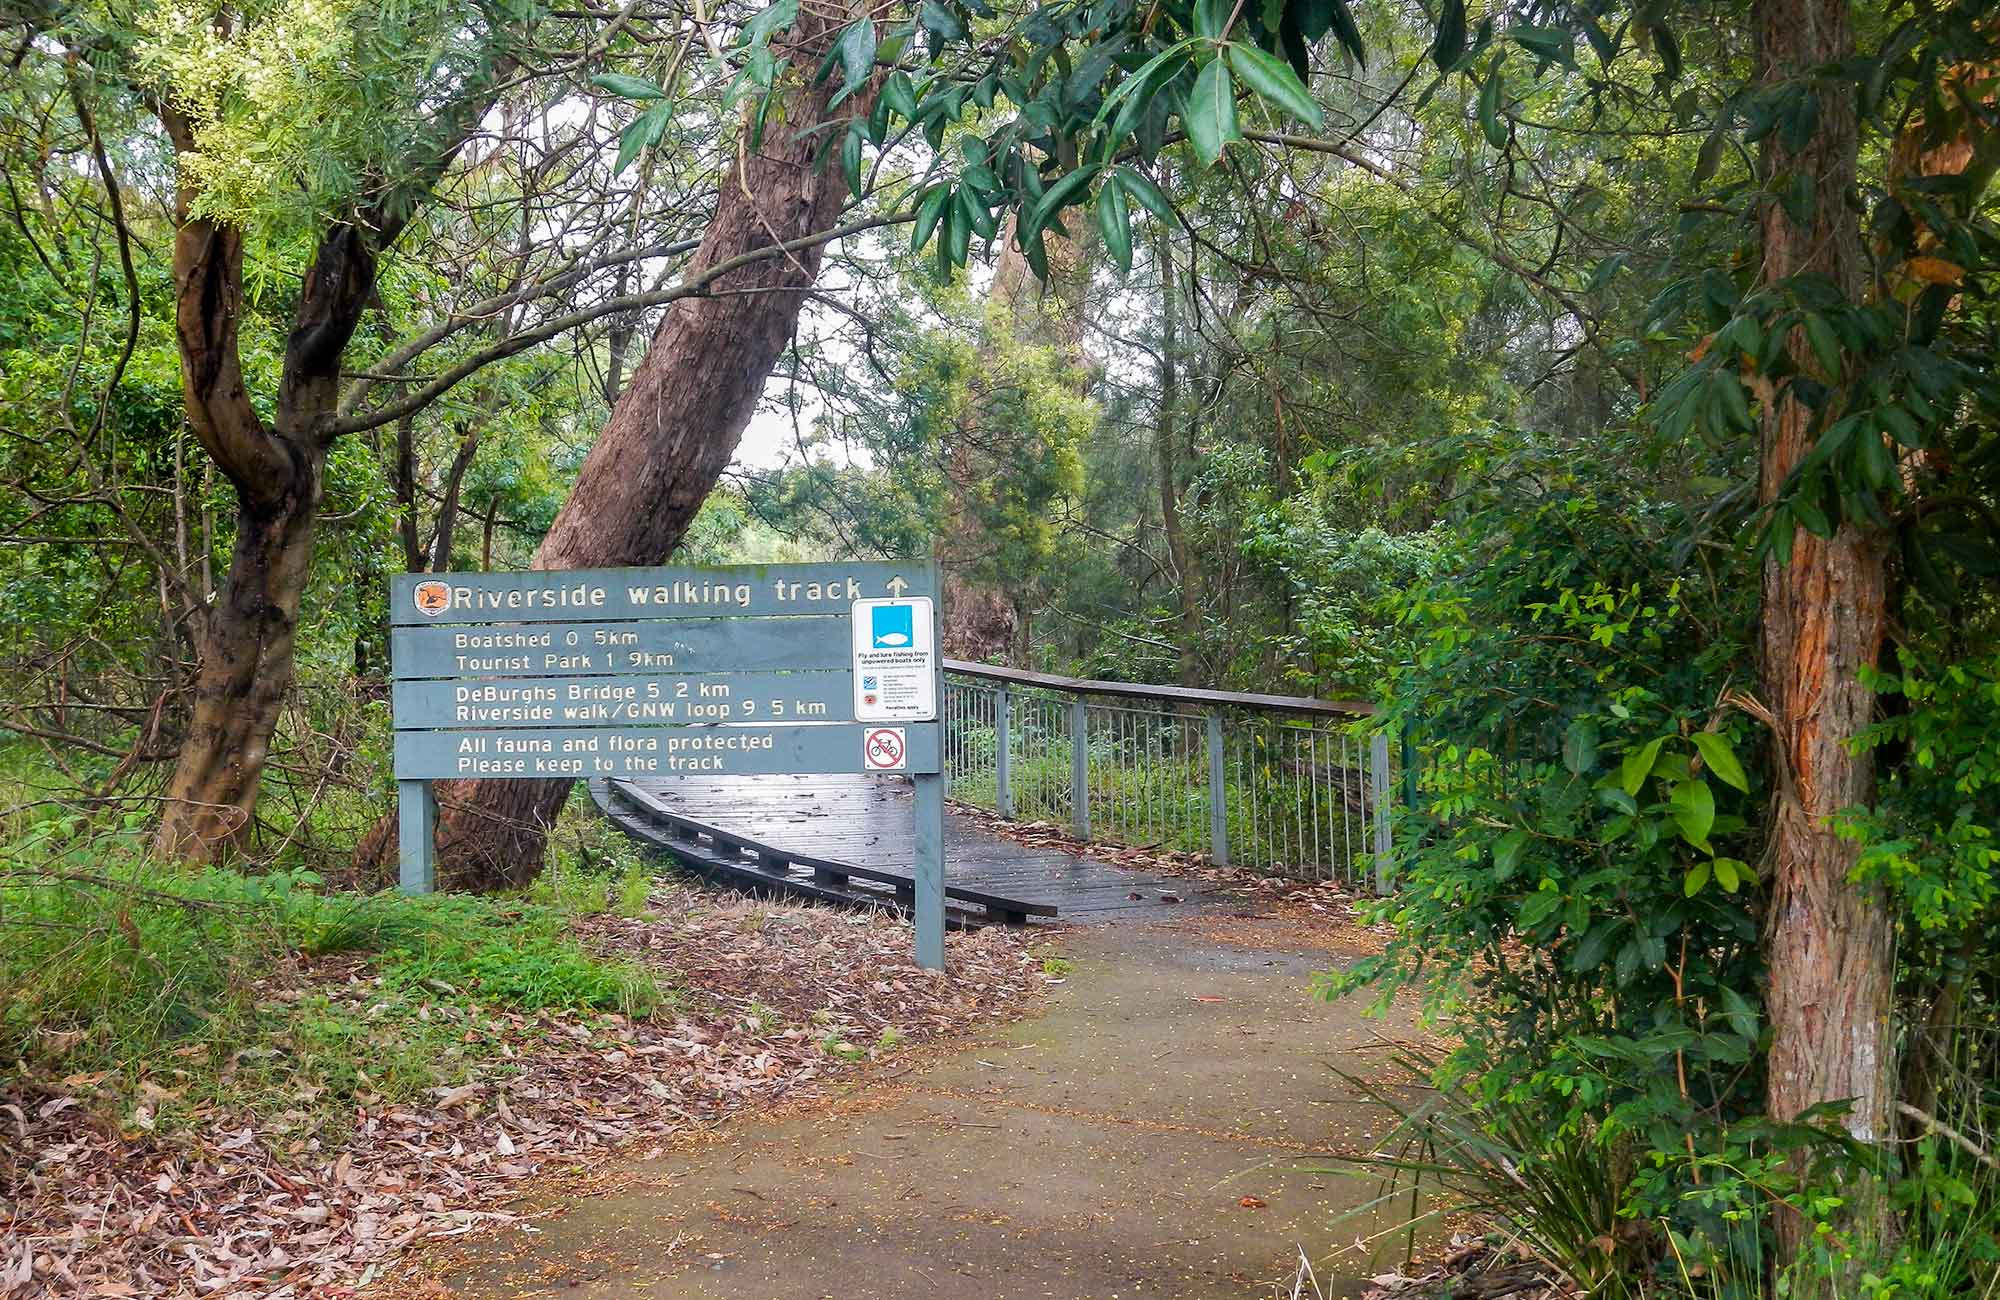 Riverside walking track, Lane Cove National Park. Photo: Debbie McGerty